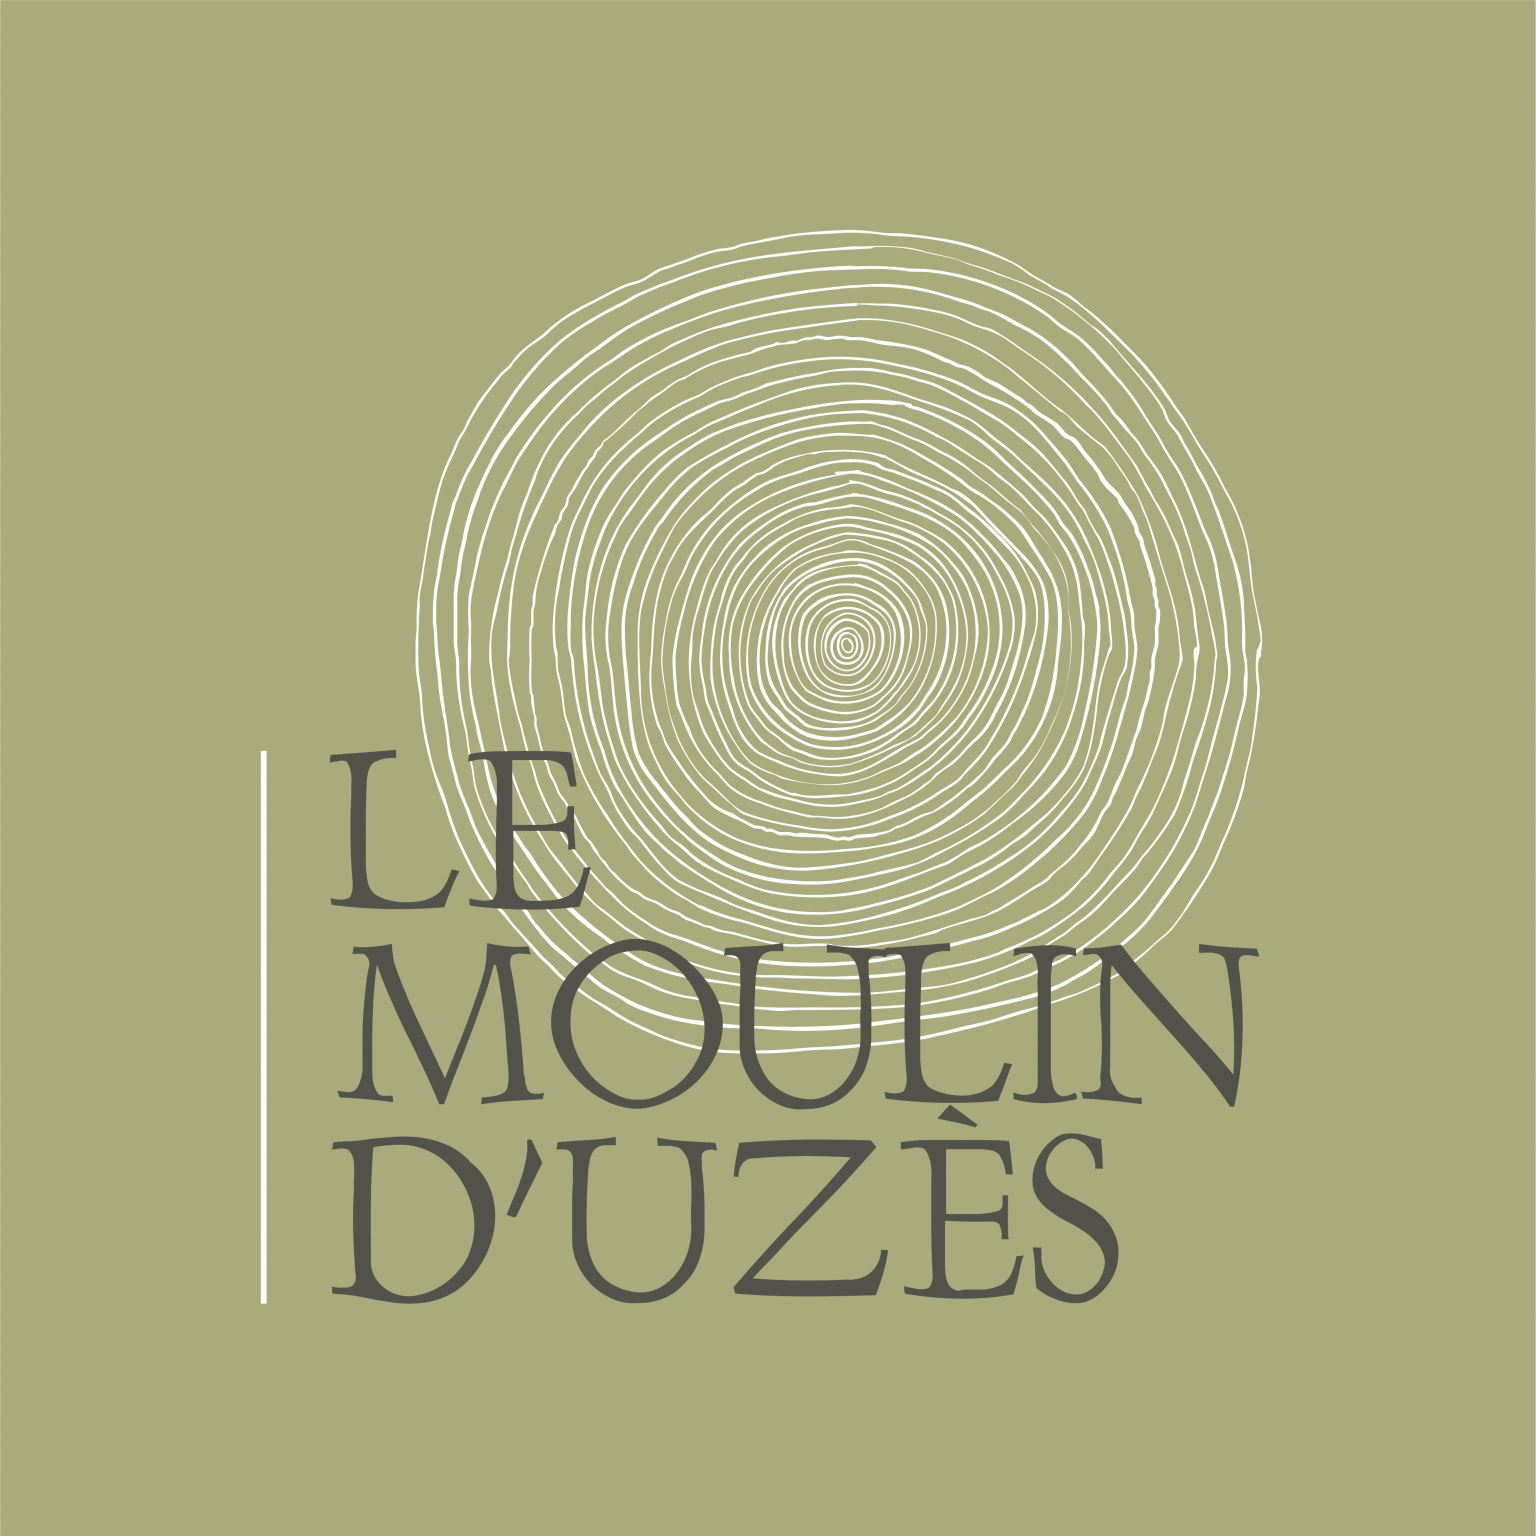 Le Moulin d'Uzes